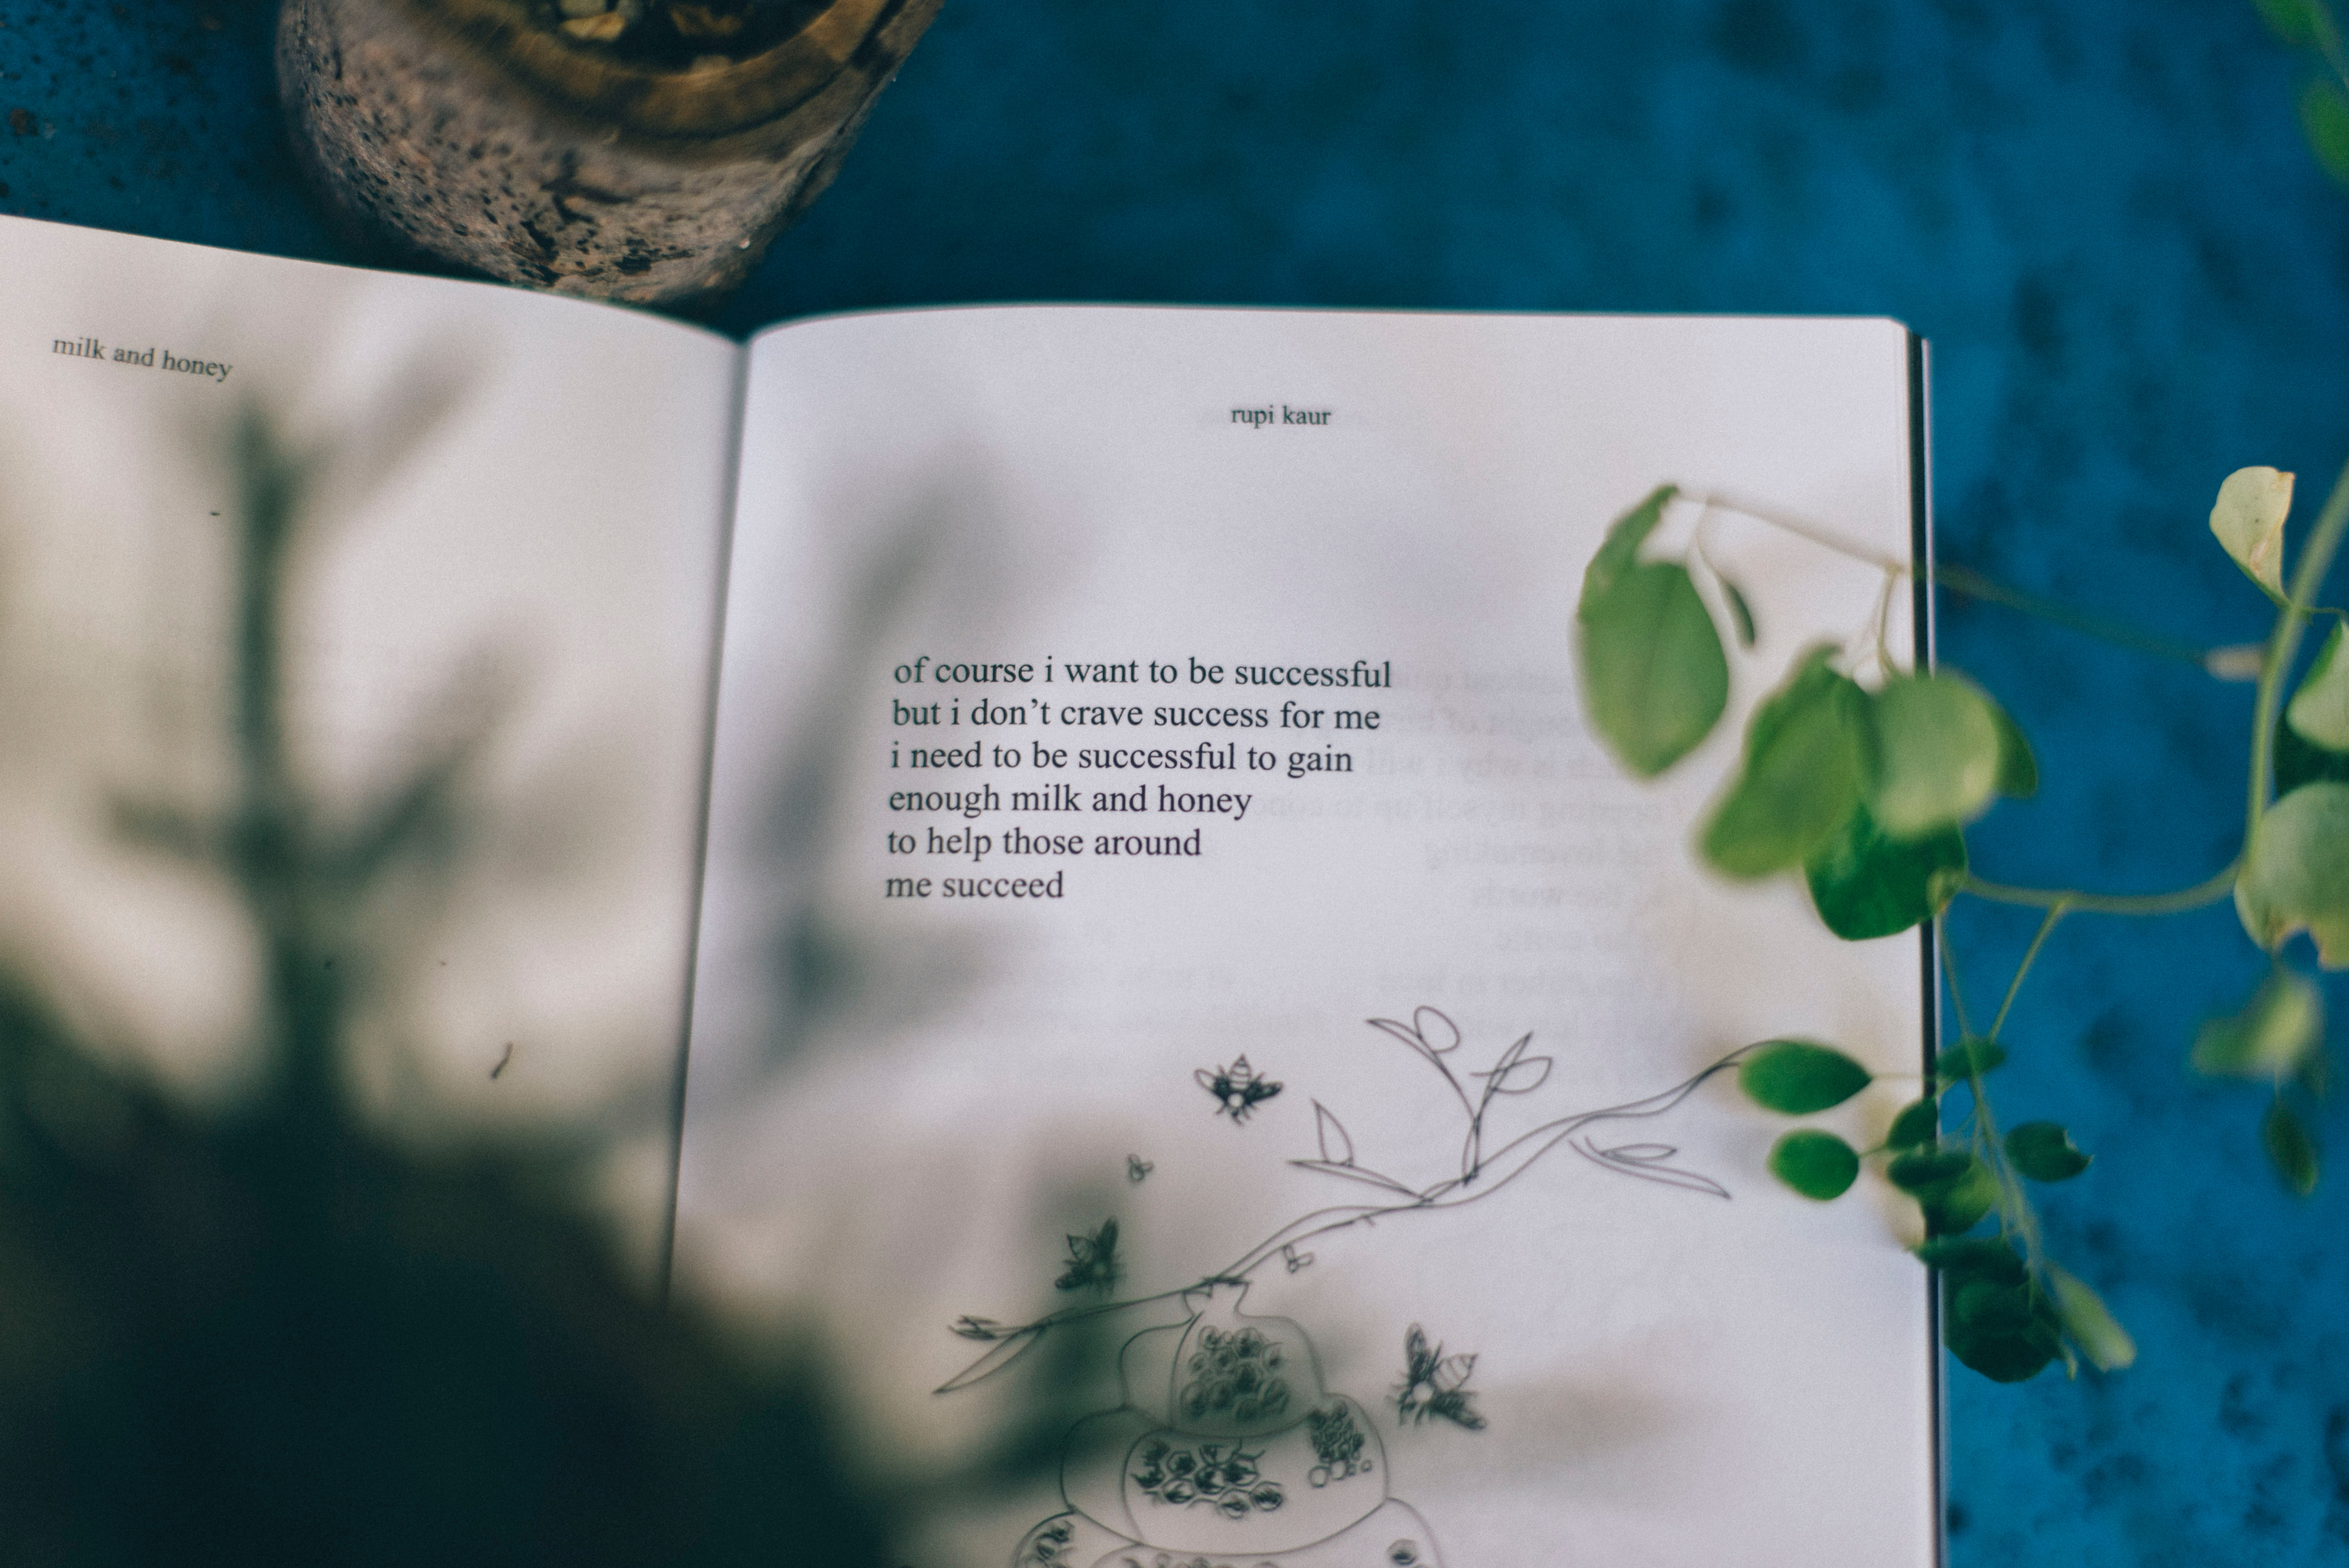 Instagram poets make me ask: What is good poetry? | America Magazine